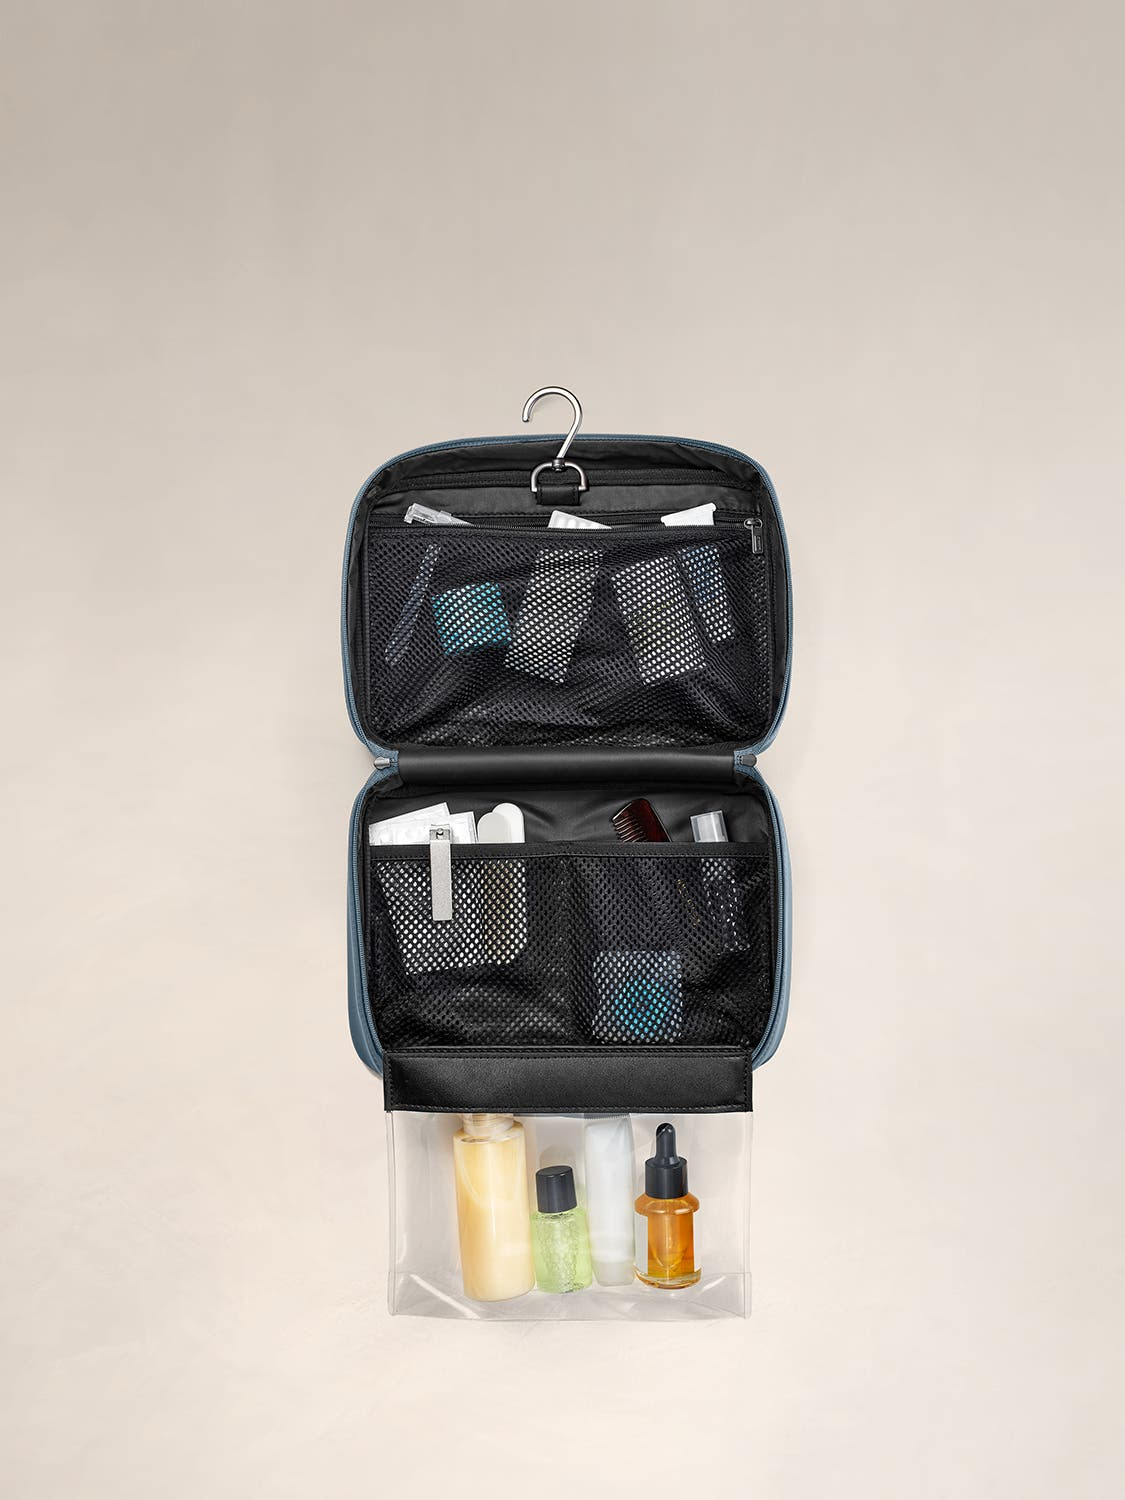 An internal view of a coast toiletry bag packed with travel accessories within mesh pockets.